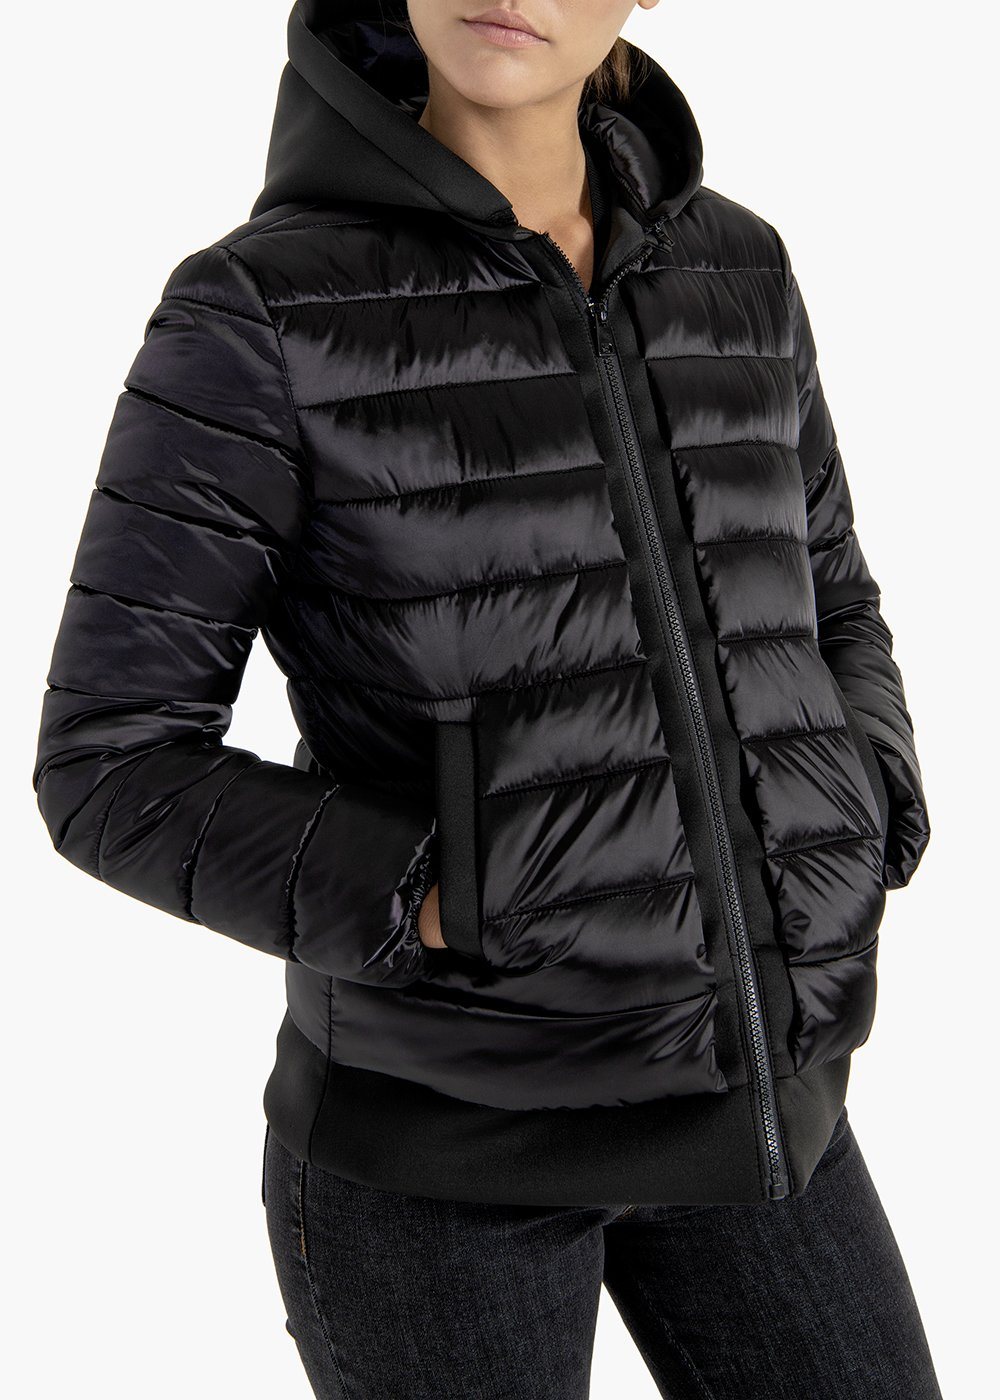 Quilted jacket Platon in satin effect fabric with hood